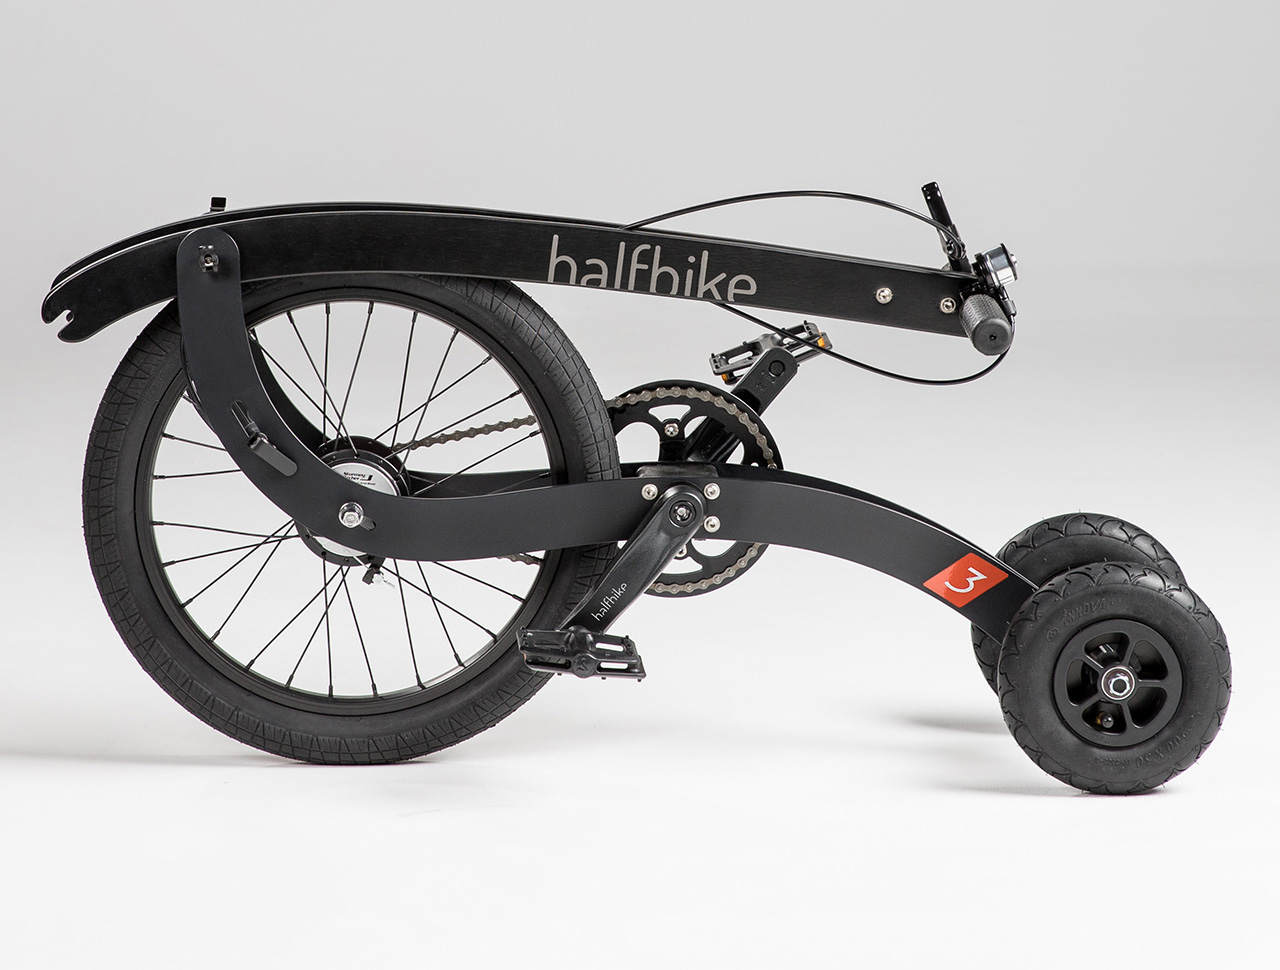 Halfbike foldable bike